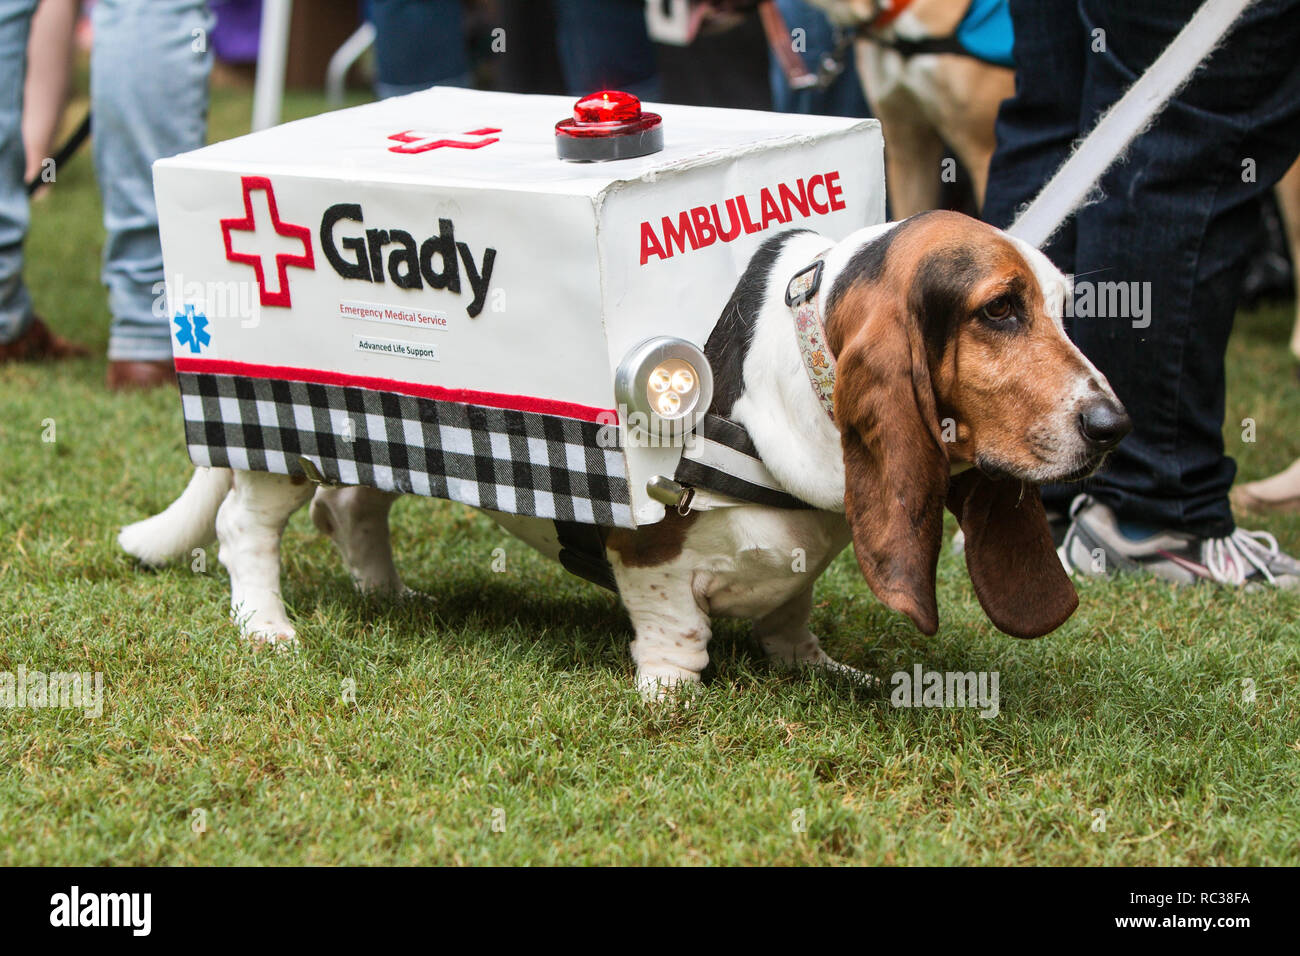 A cute basset hound wears an ambulance costume with flashing lights at Doggy Con, a dog costume contest on August 18, 2018 in Atlanta, GA. - Stock Image